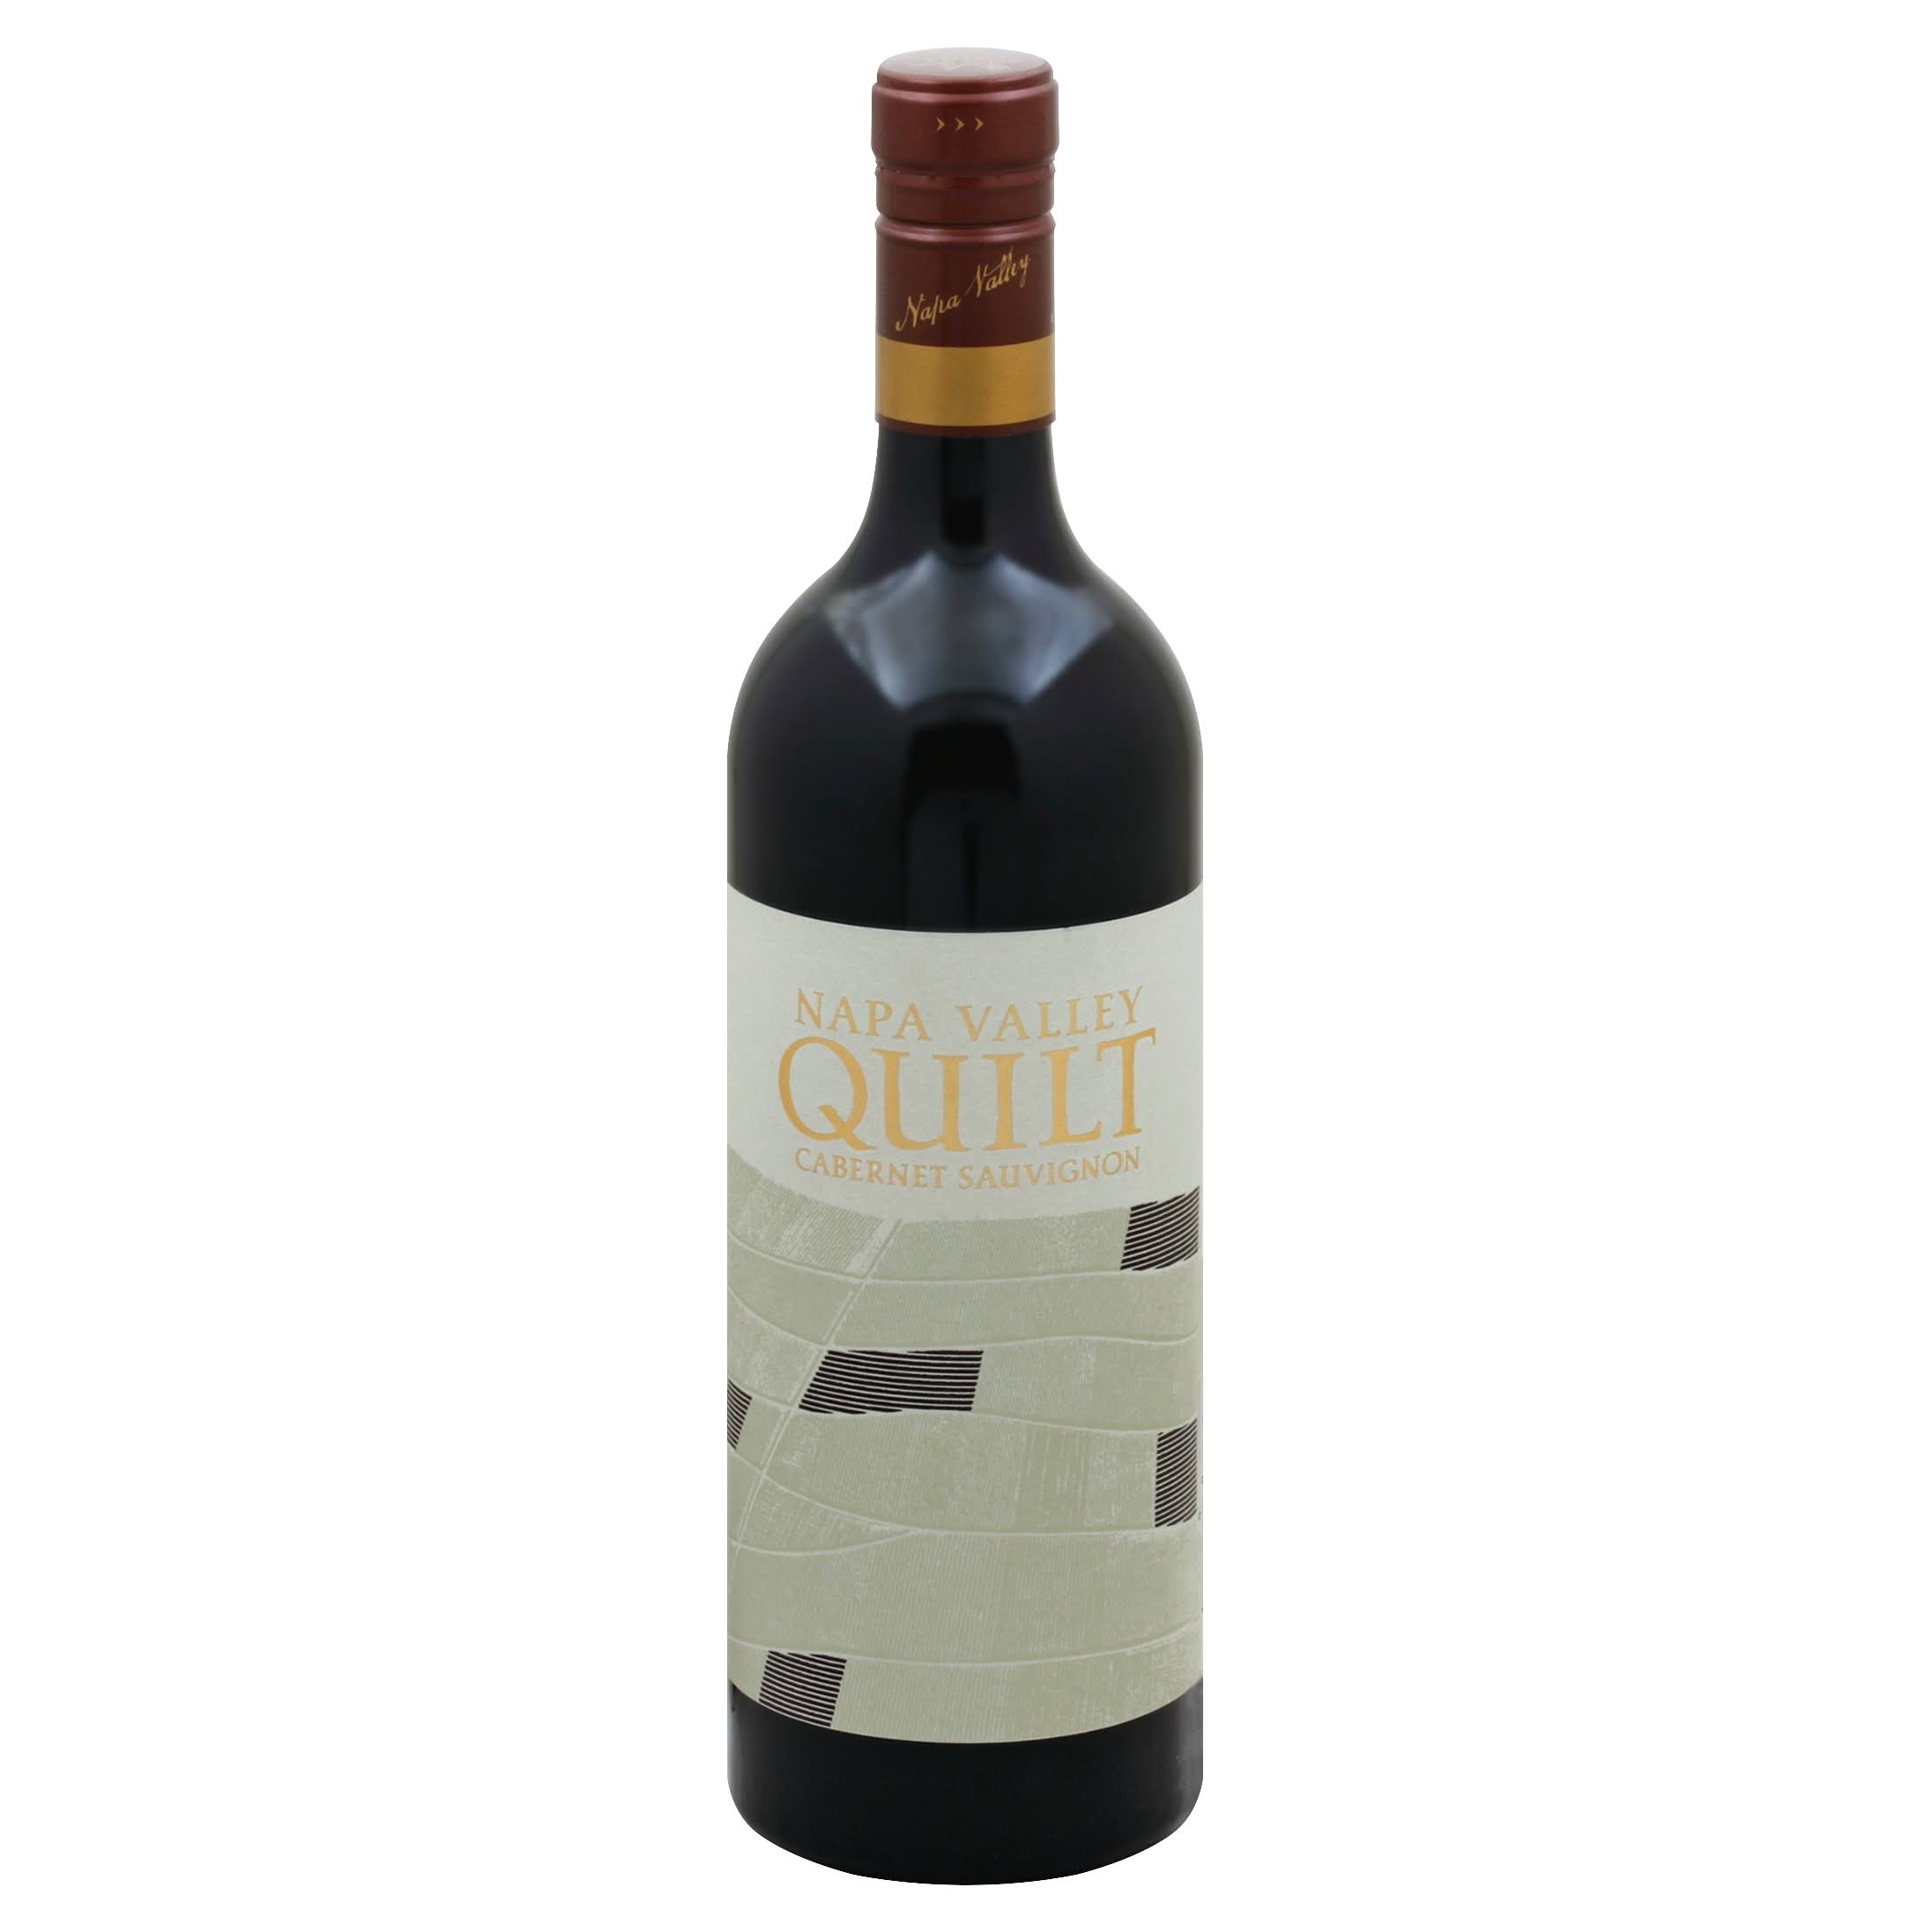 Quilt Cabernet Sauvignon, Napa Valley, 2014 - 750 ml